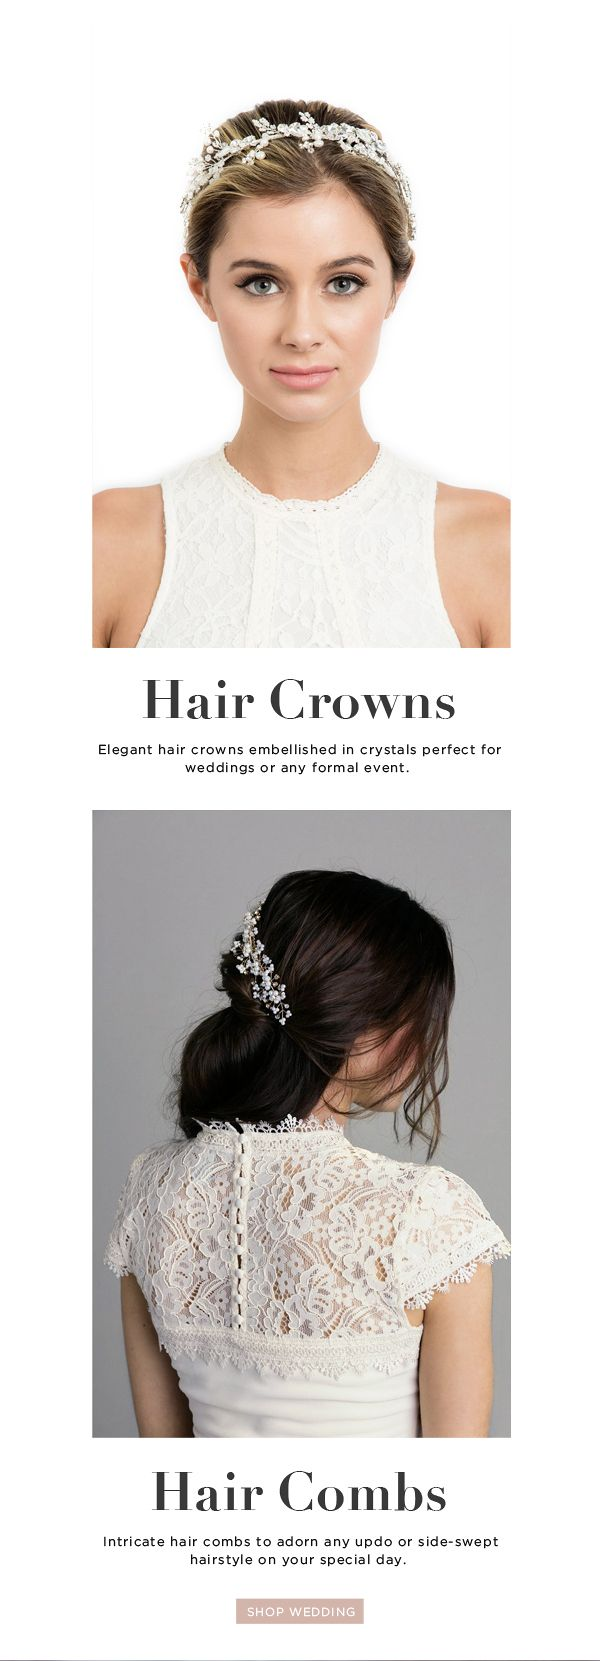 Swarovski dusted hair pieces for all bridal hairstyles check out